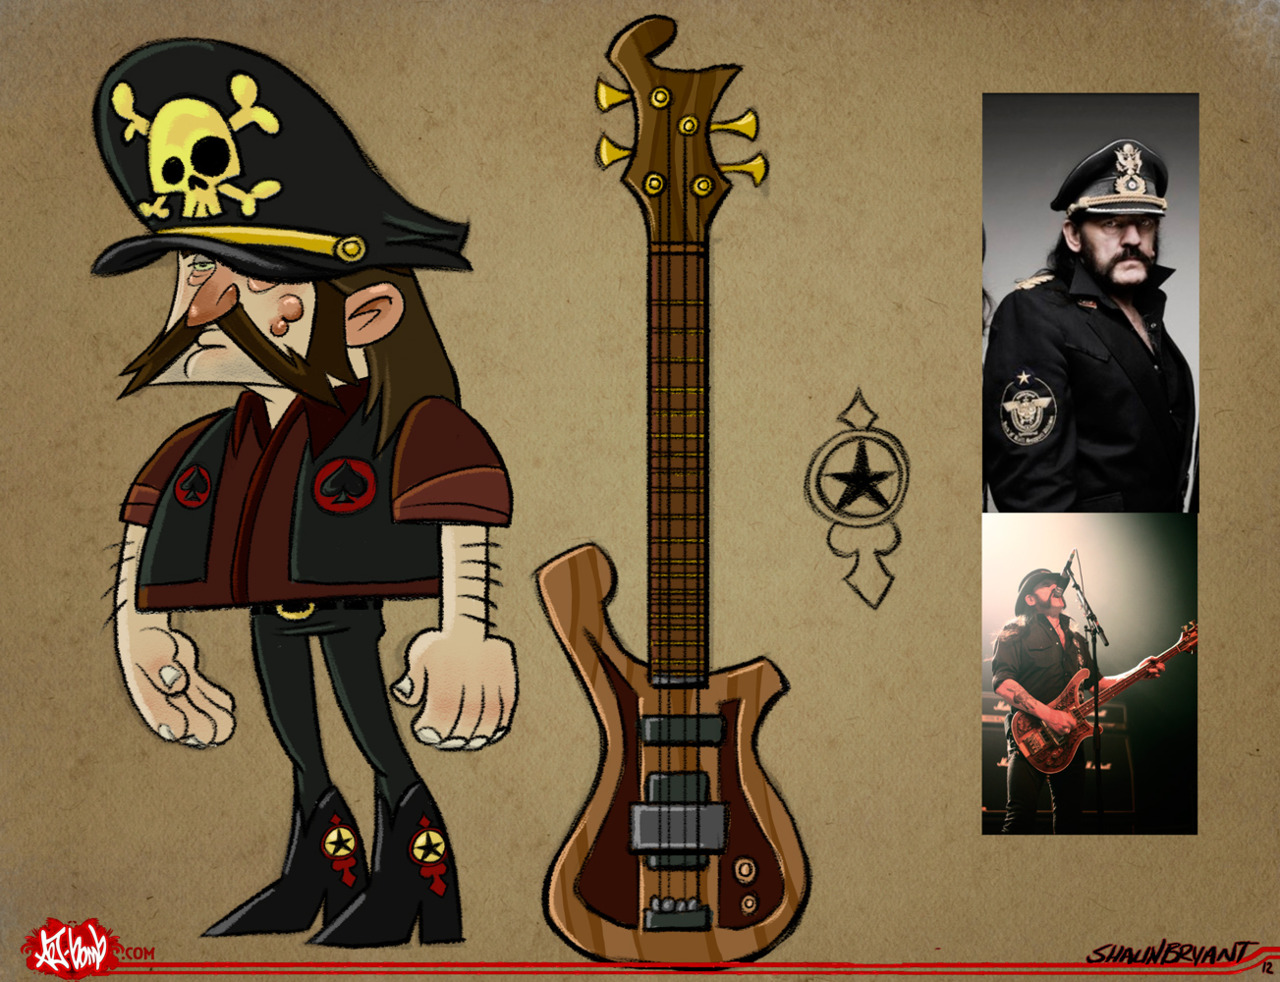 A lil 'toon character of Lemmy Kilmister.